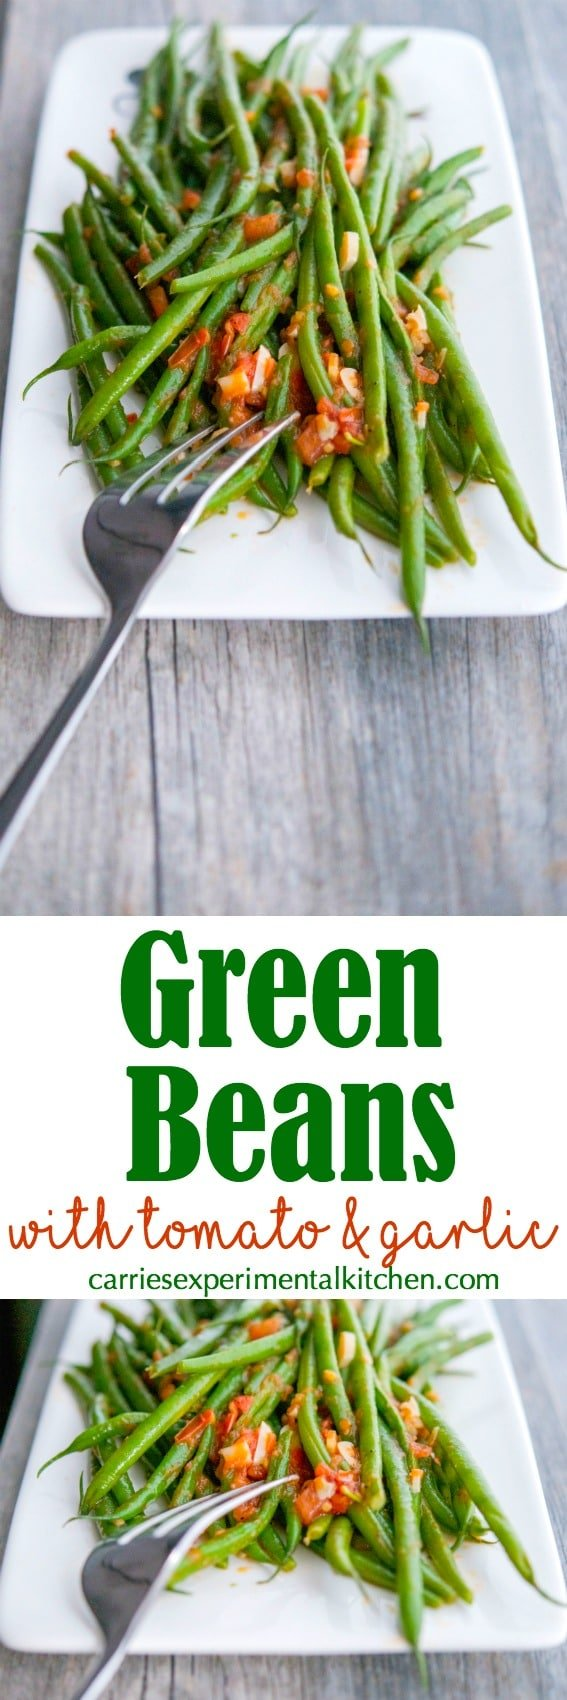 Green beans sautéed with fresh garlic and tomatoes in a light broth make the perfect accompaniment to any meal. #vegetables #greenbeans #vegetarian #tomatoes #garlic